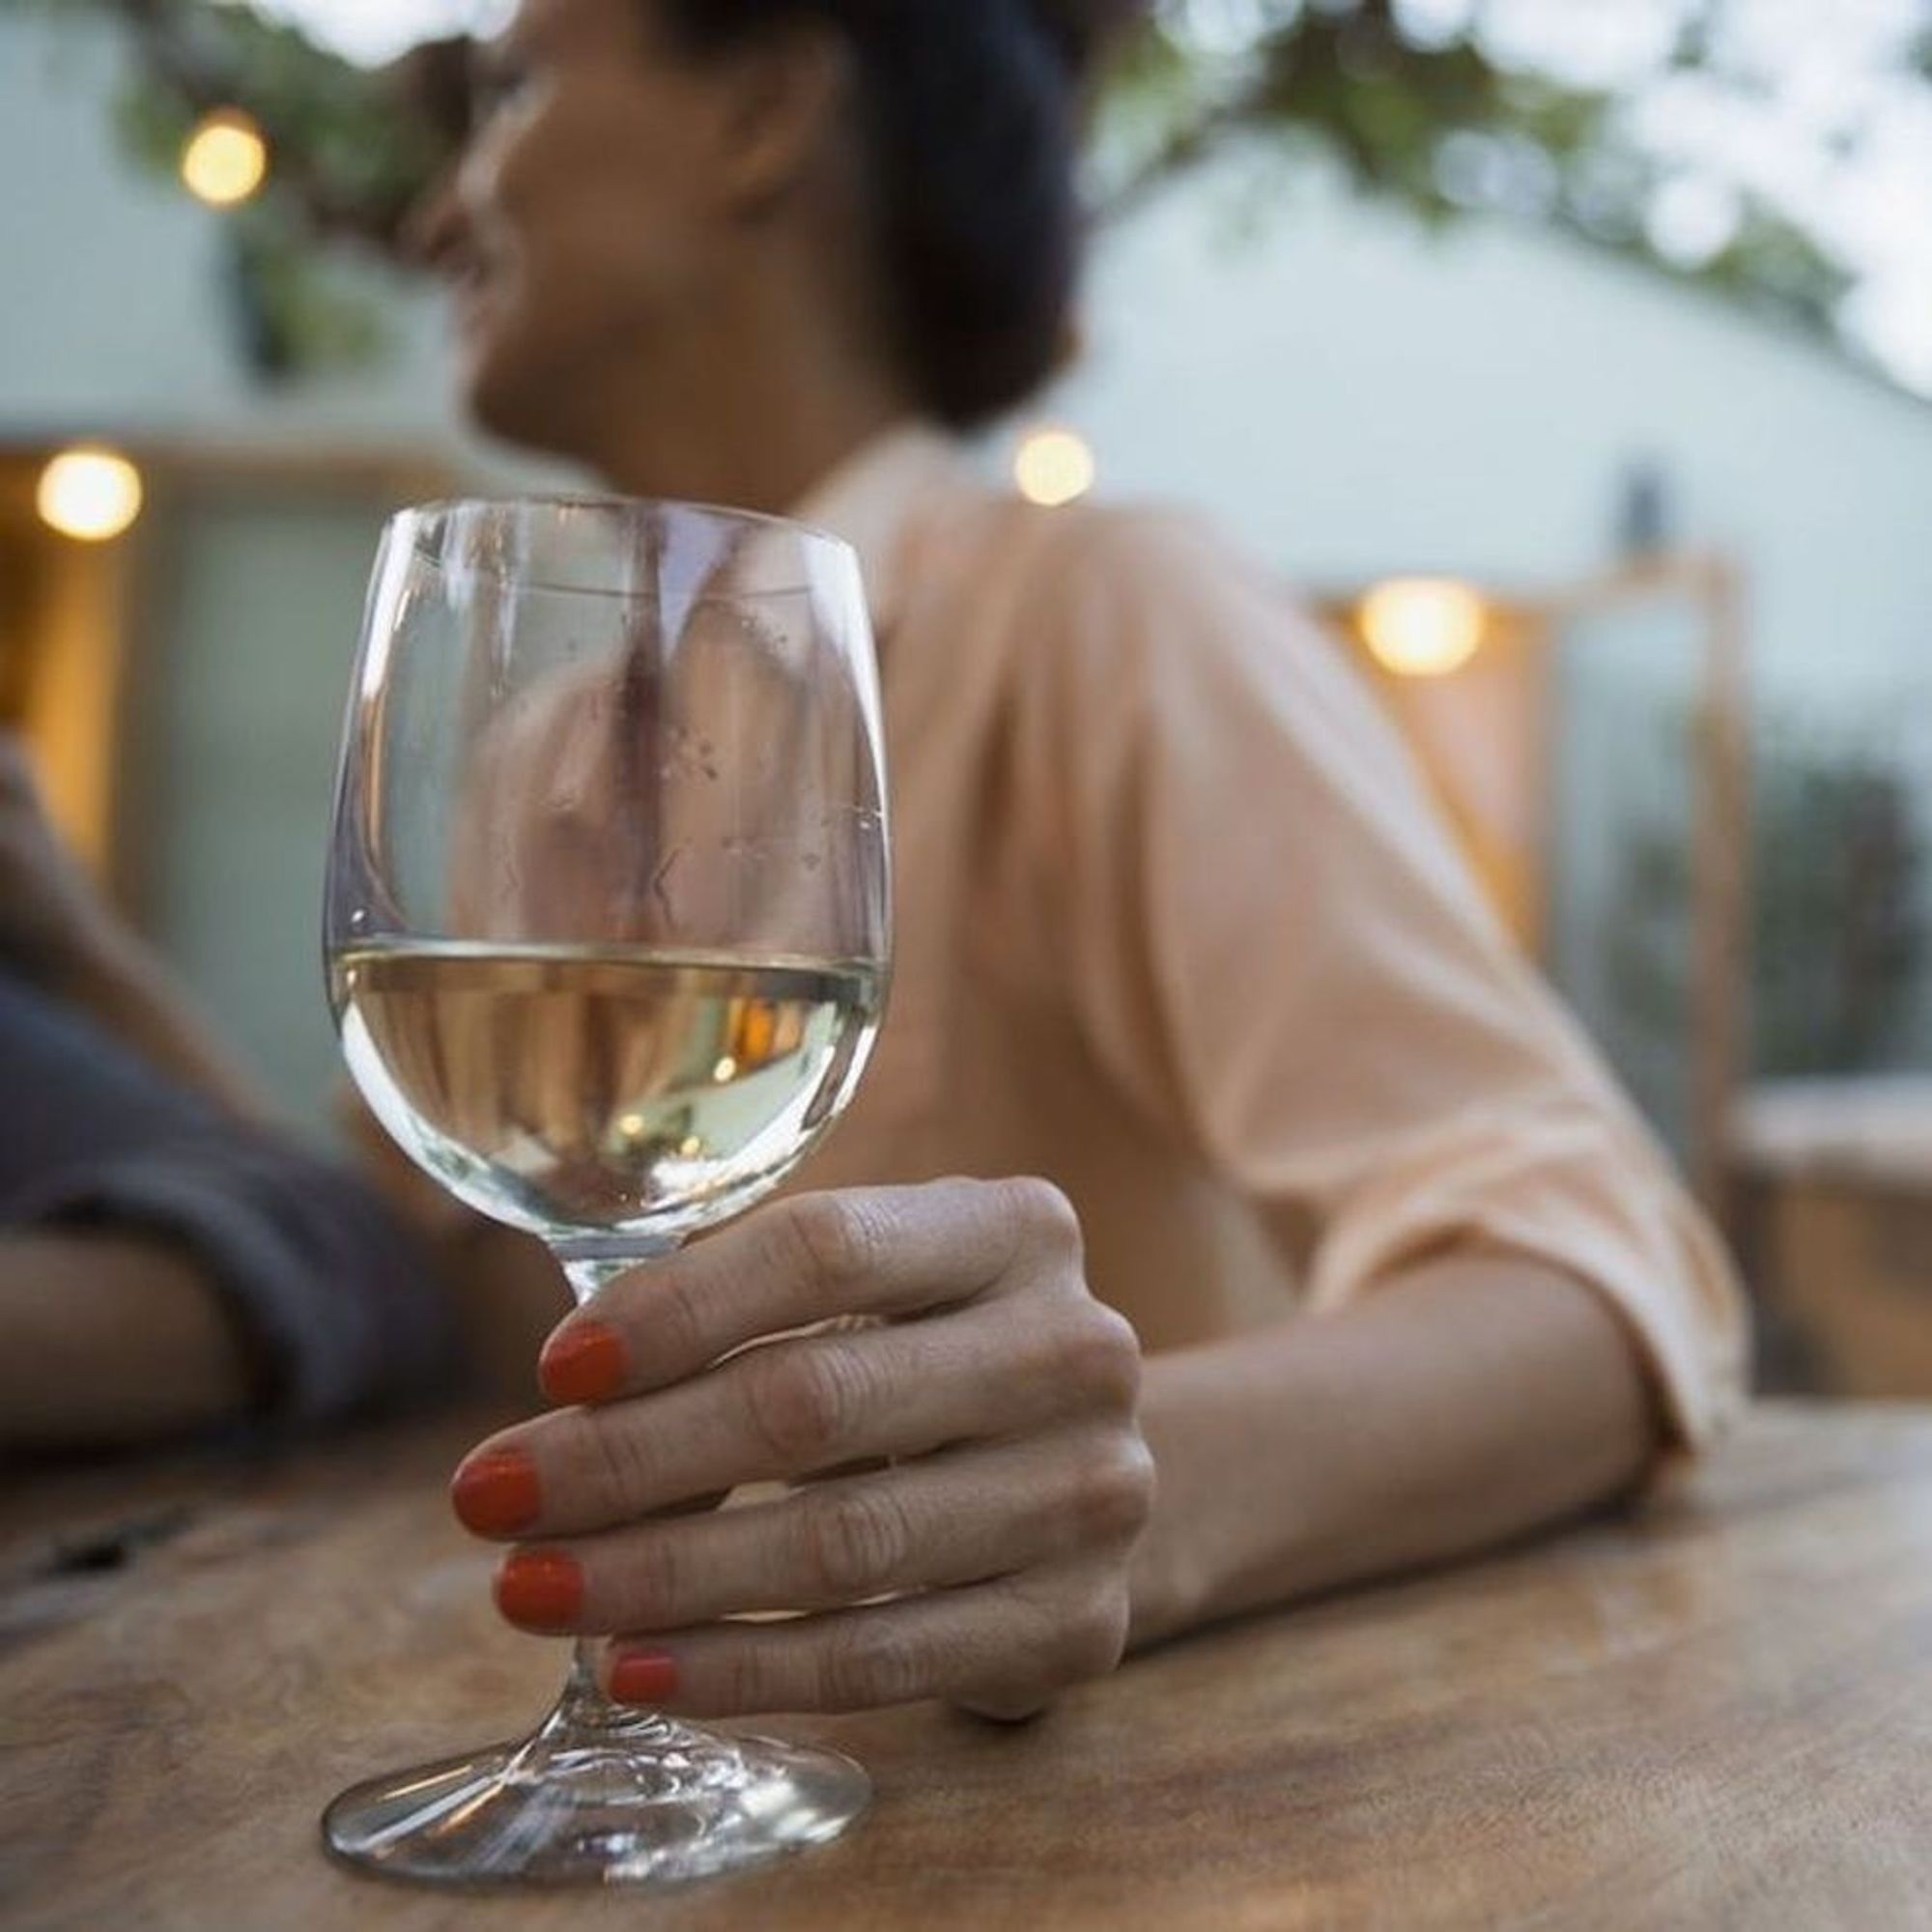 I Stopped Drinking Alcohol for a Month, Here's What Happened